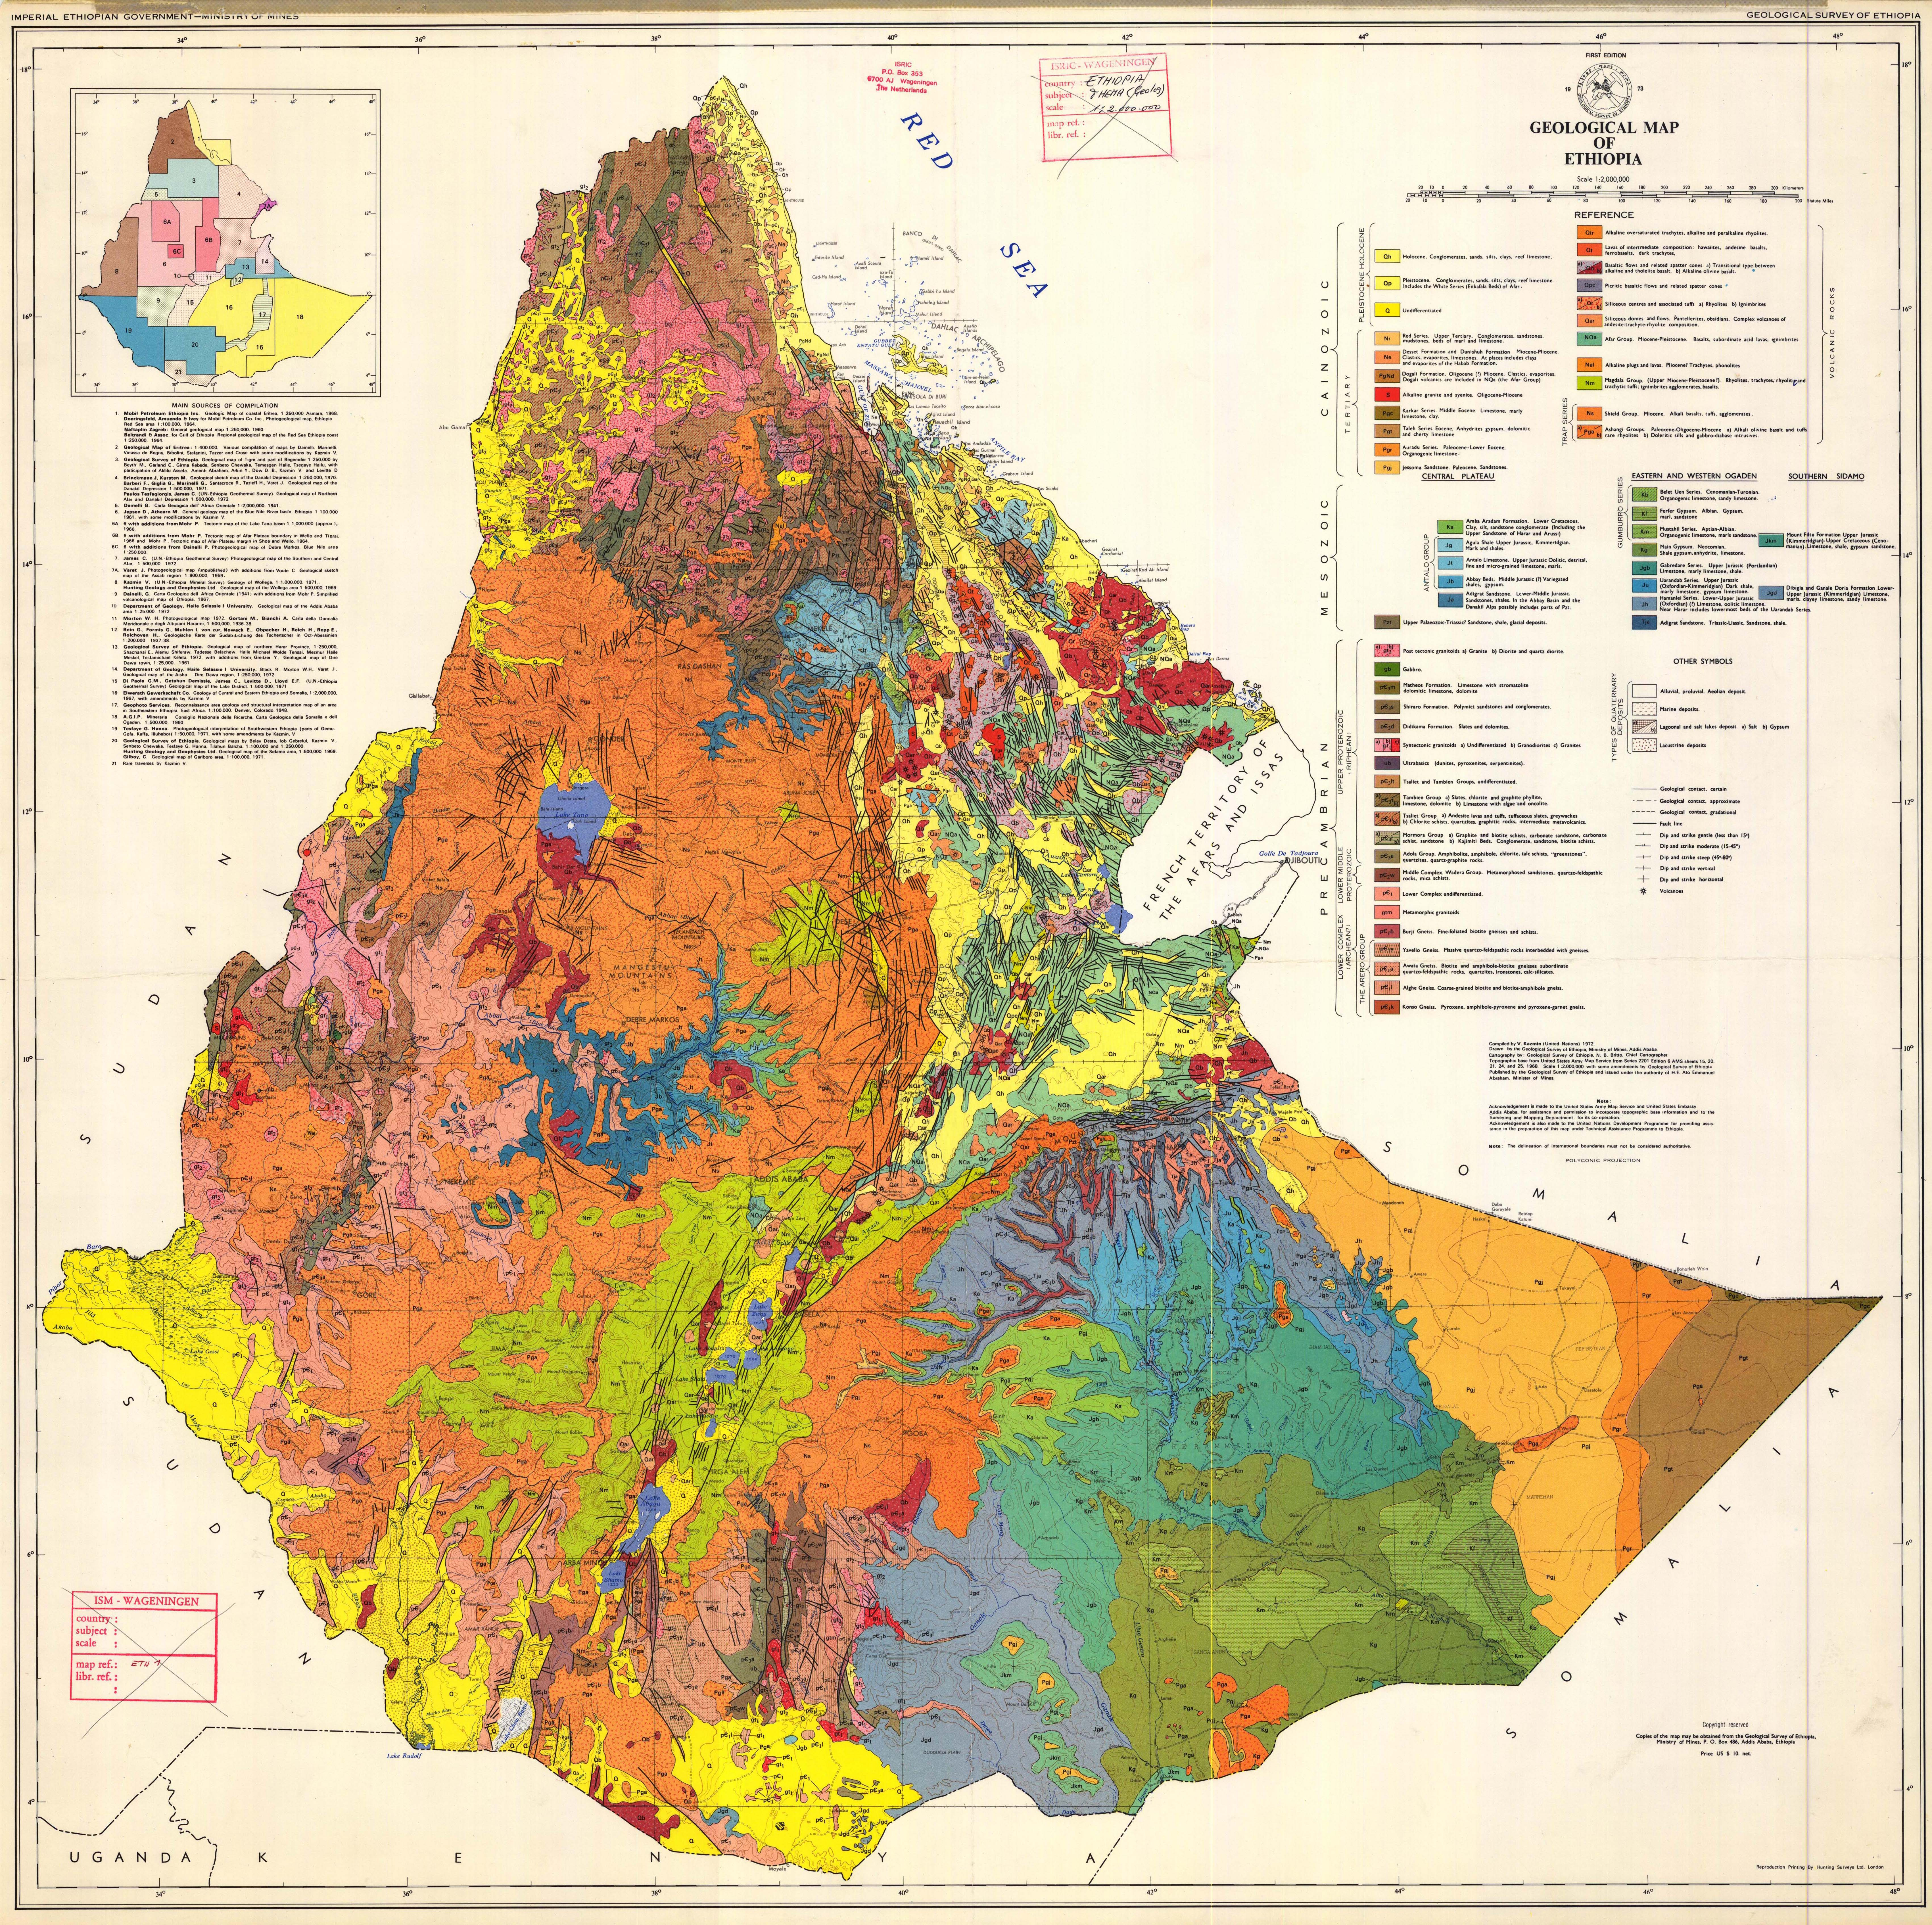 Geological Map Of Spain.Large Detailed Geological Map Of Ethiopia Ethiopia Large Detailed